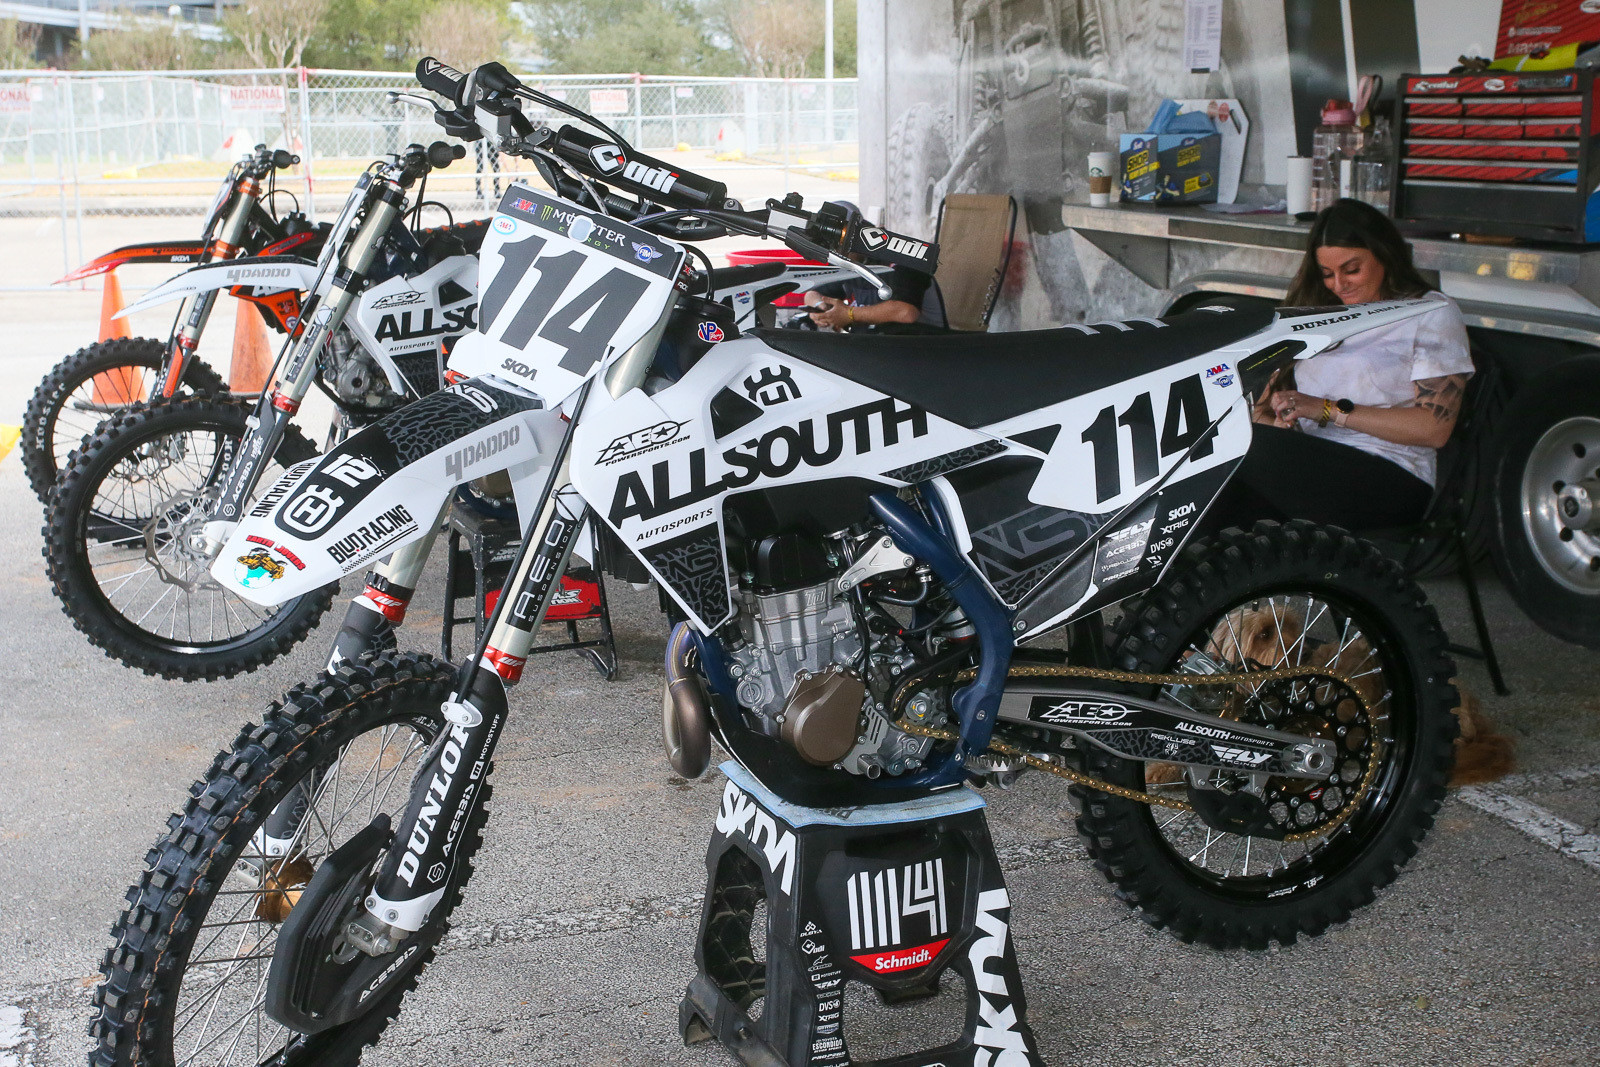 Nearly all of the AllSouth team's bikes use the black/white setup, though there may be an orange version there in the back.